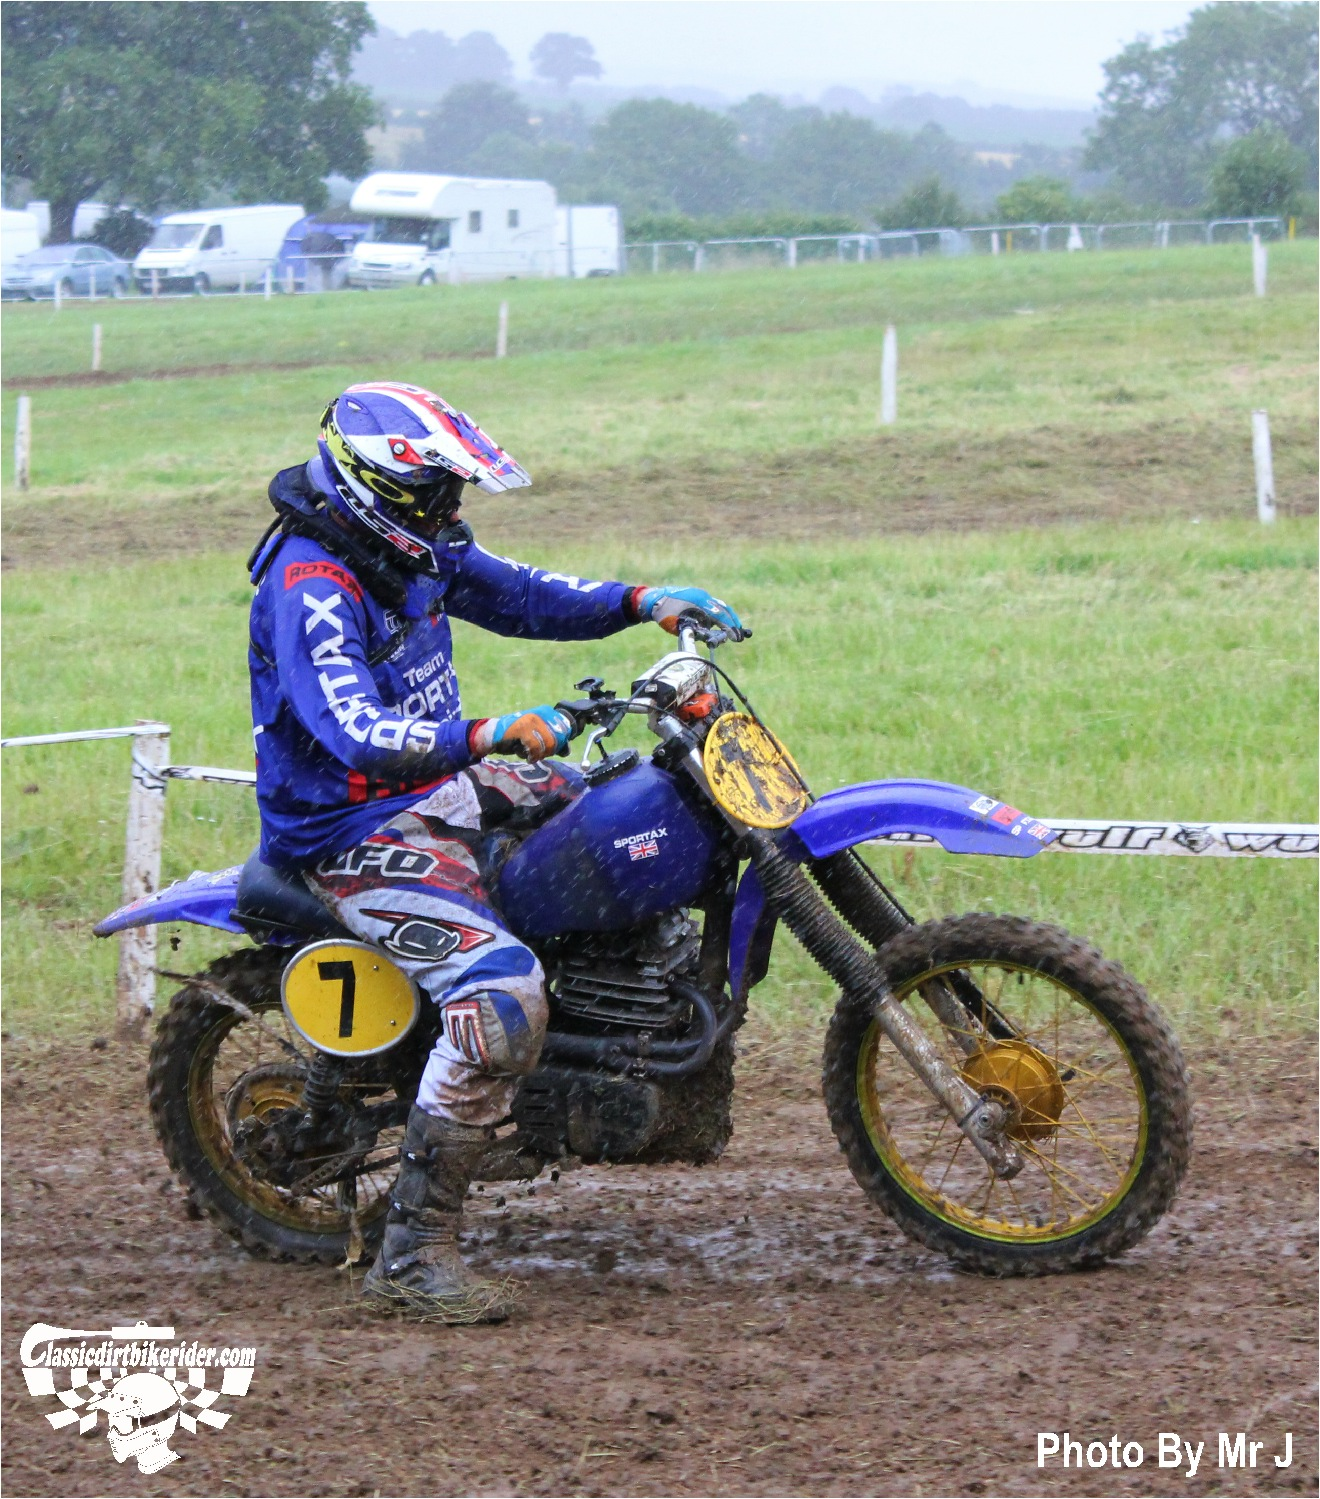 king of the castle 2015 photos Farleigh Castle twinshock motocross classicdirtbikerider.com 67